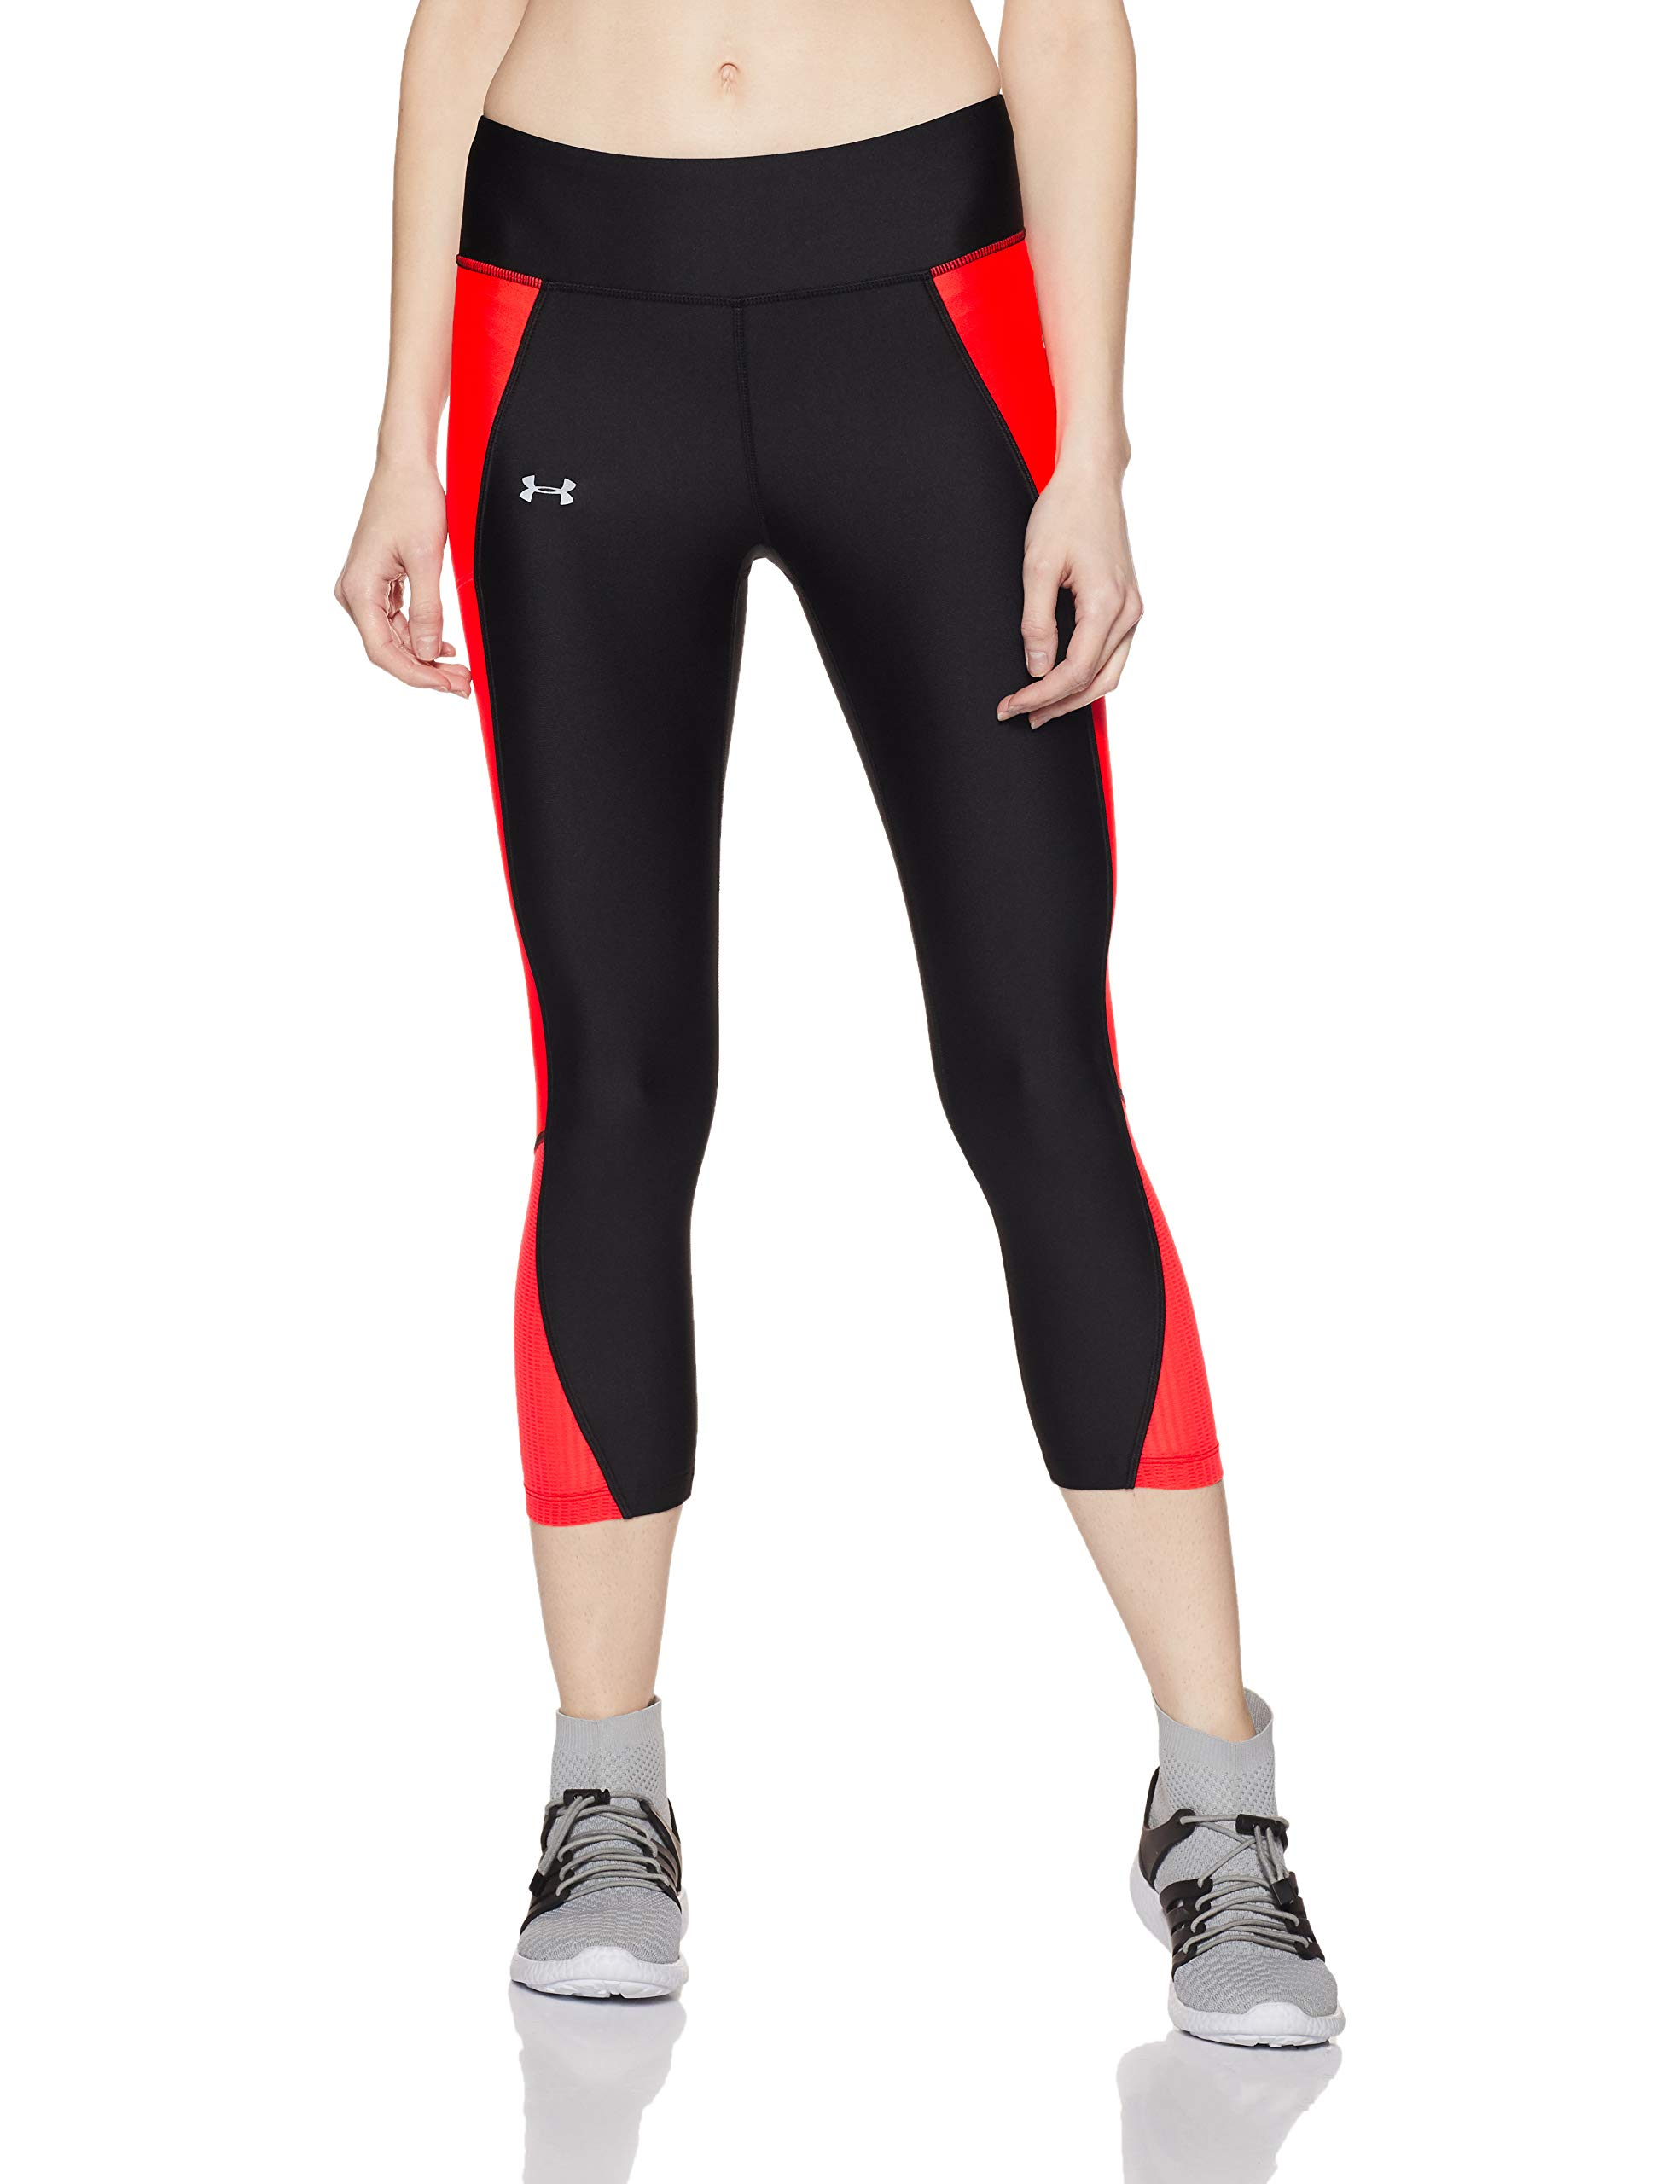 Under Armour Women's Fly-By Capri,Black (006)/Reflective, X-Small